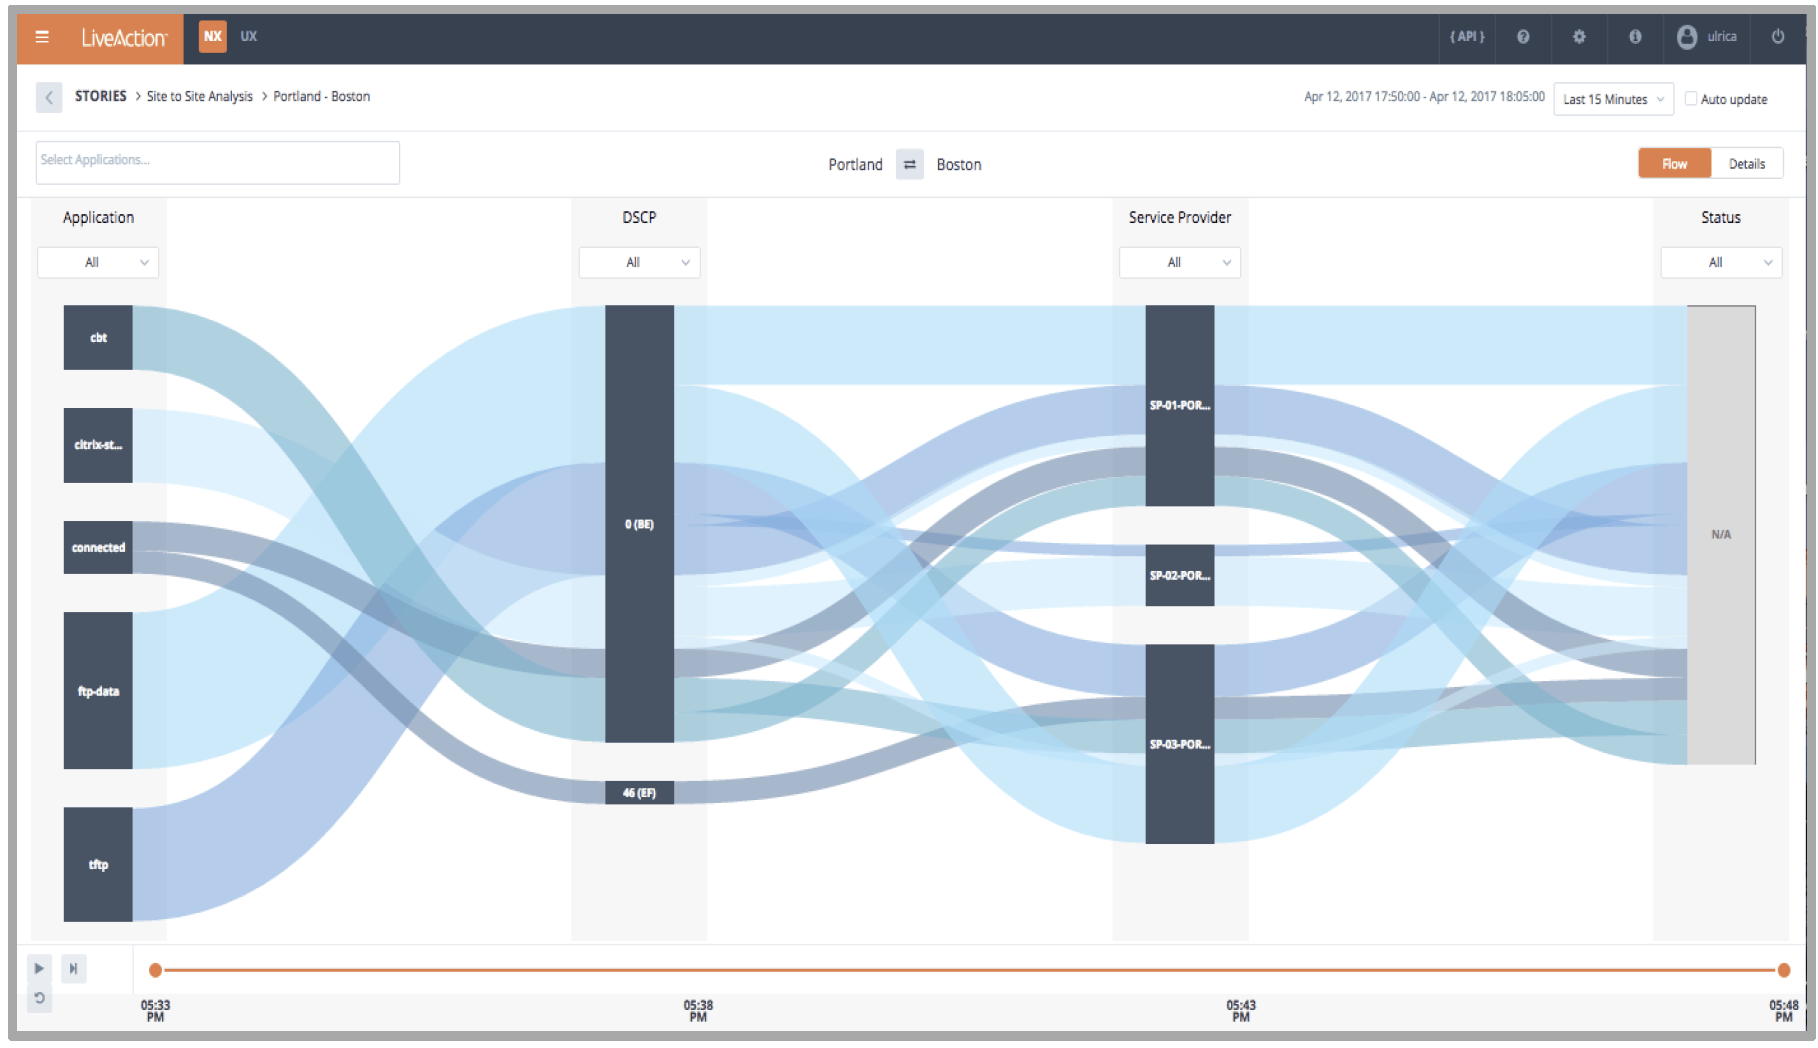 hight resolution of the site to site sankey diagram depicts how traffic is flowing from site to site it goes beyond just two dimensional visualizations